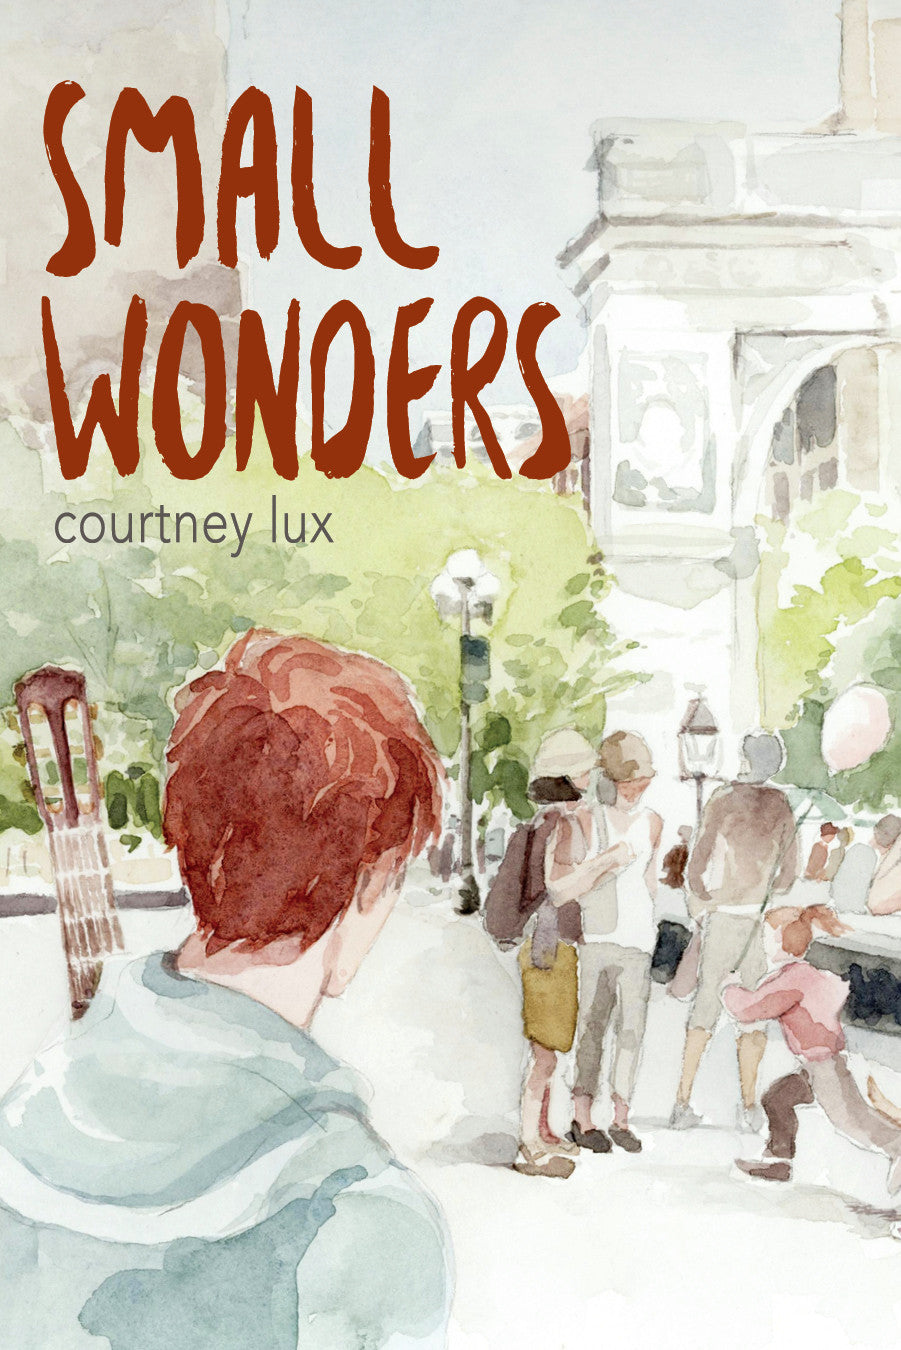 Small Wonders by Courtney Lux (printed book)